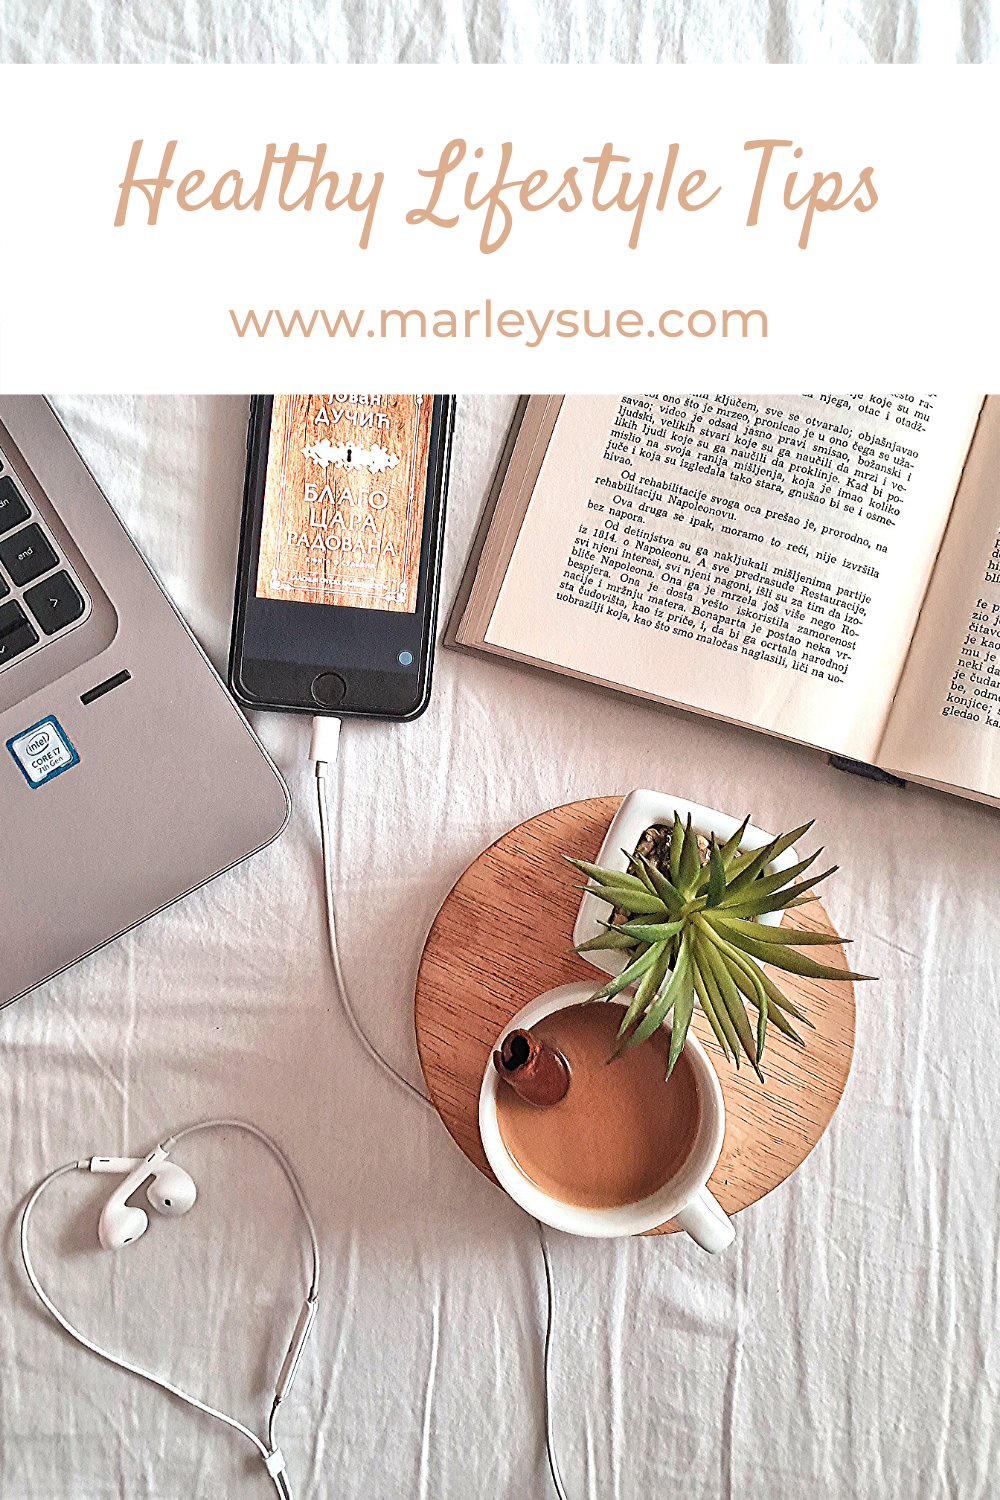 Visit www.marleysue.com for all things wellness and positivity! Marley strives to inspire others to be their best self. Healthy, plant-based recipes, eco-friendly living, and self care!  #healthylifestyle #healthylifestyletips #healthyrecipes #plantbasedrecipes #inspiration #marleysueblog #healthyeating  #healthyrecipesforwomen #ecofriendlyliving #slowliving #mindfulness #positivitytips #selfcareroutine #blogger #girlgang #positiveaffirmations